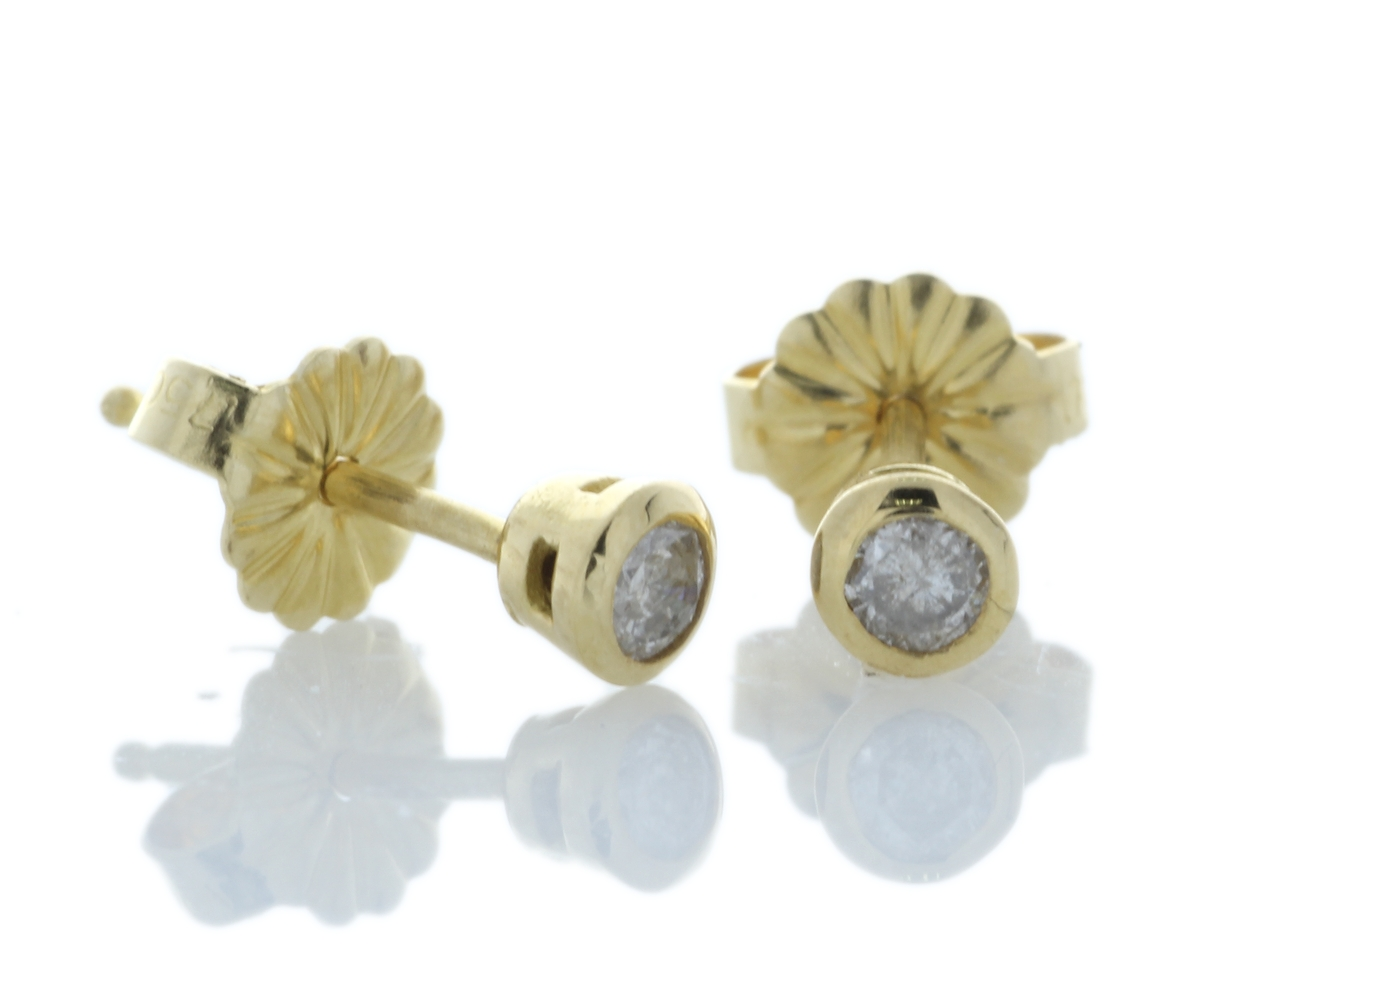 18ct Yellow Gold Single Stone Rub Over Set Diamond Earring 0.33 Carats - Image 2 of 3